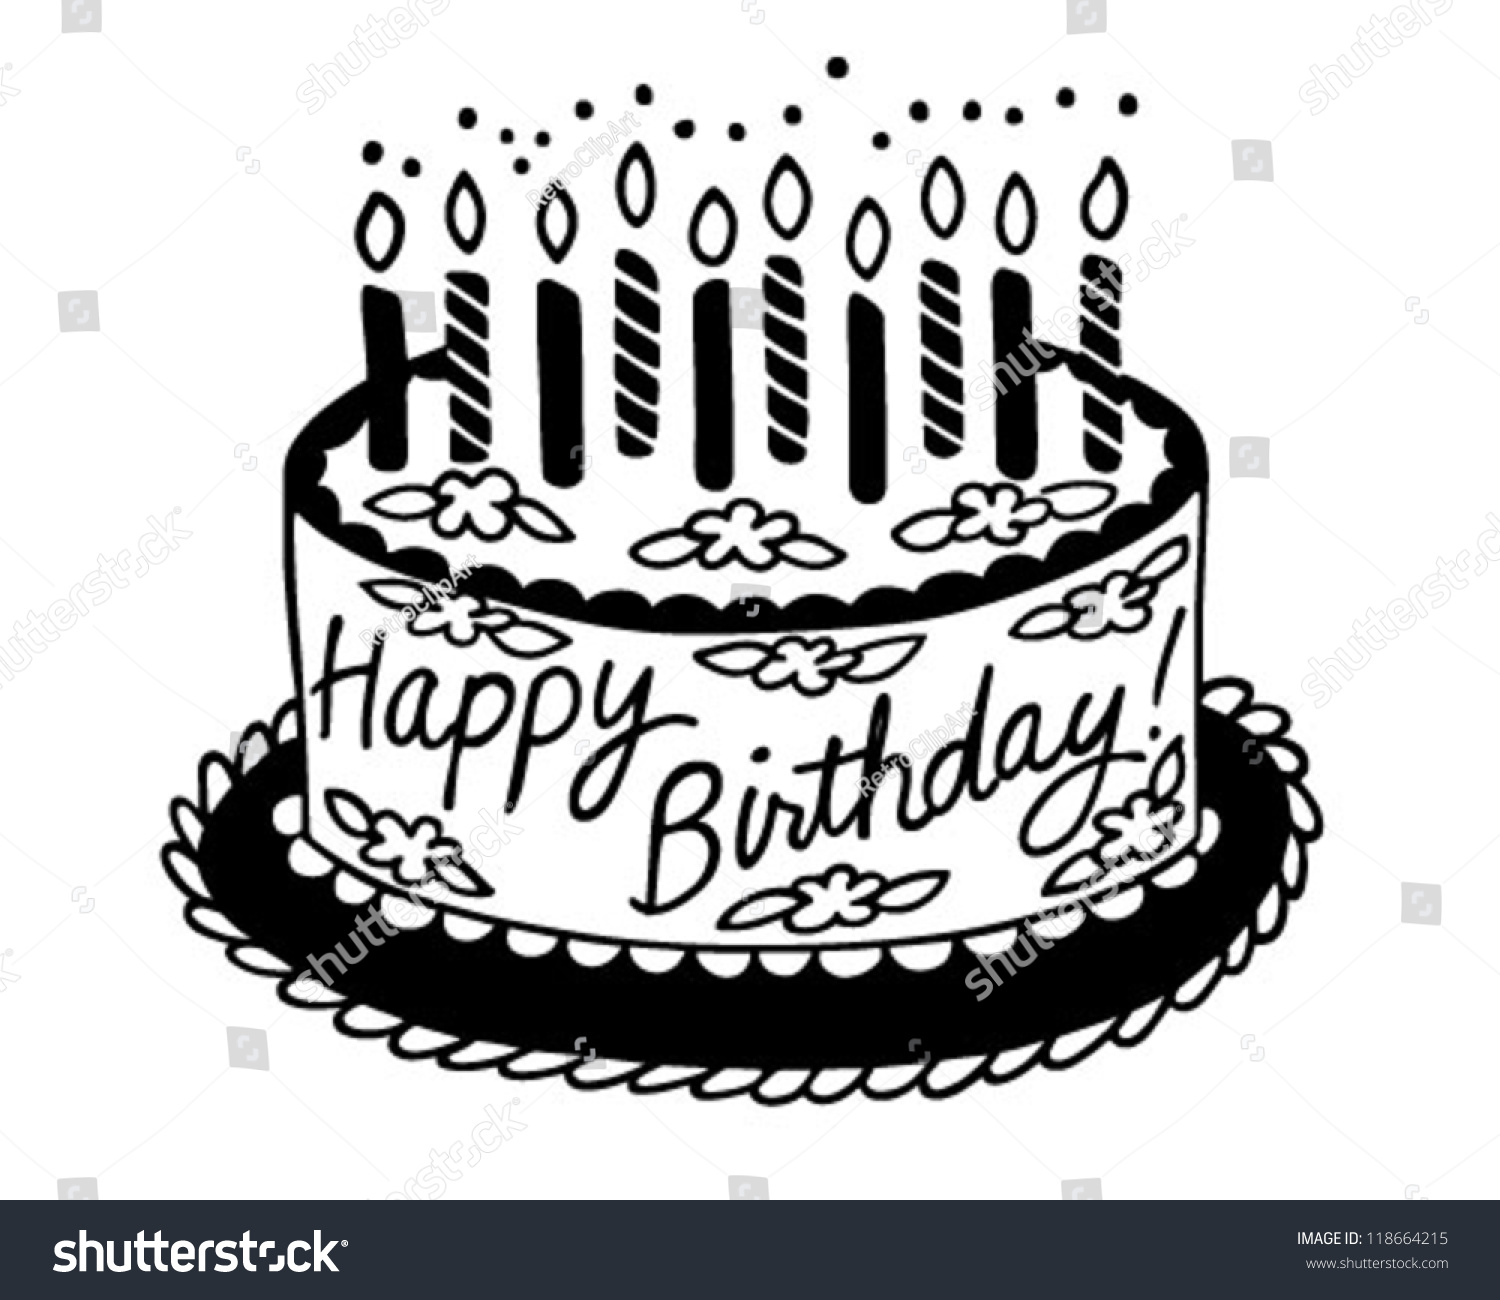 Gallery For Happy Birthday Cake Clipart Black And White.